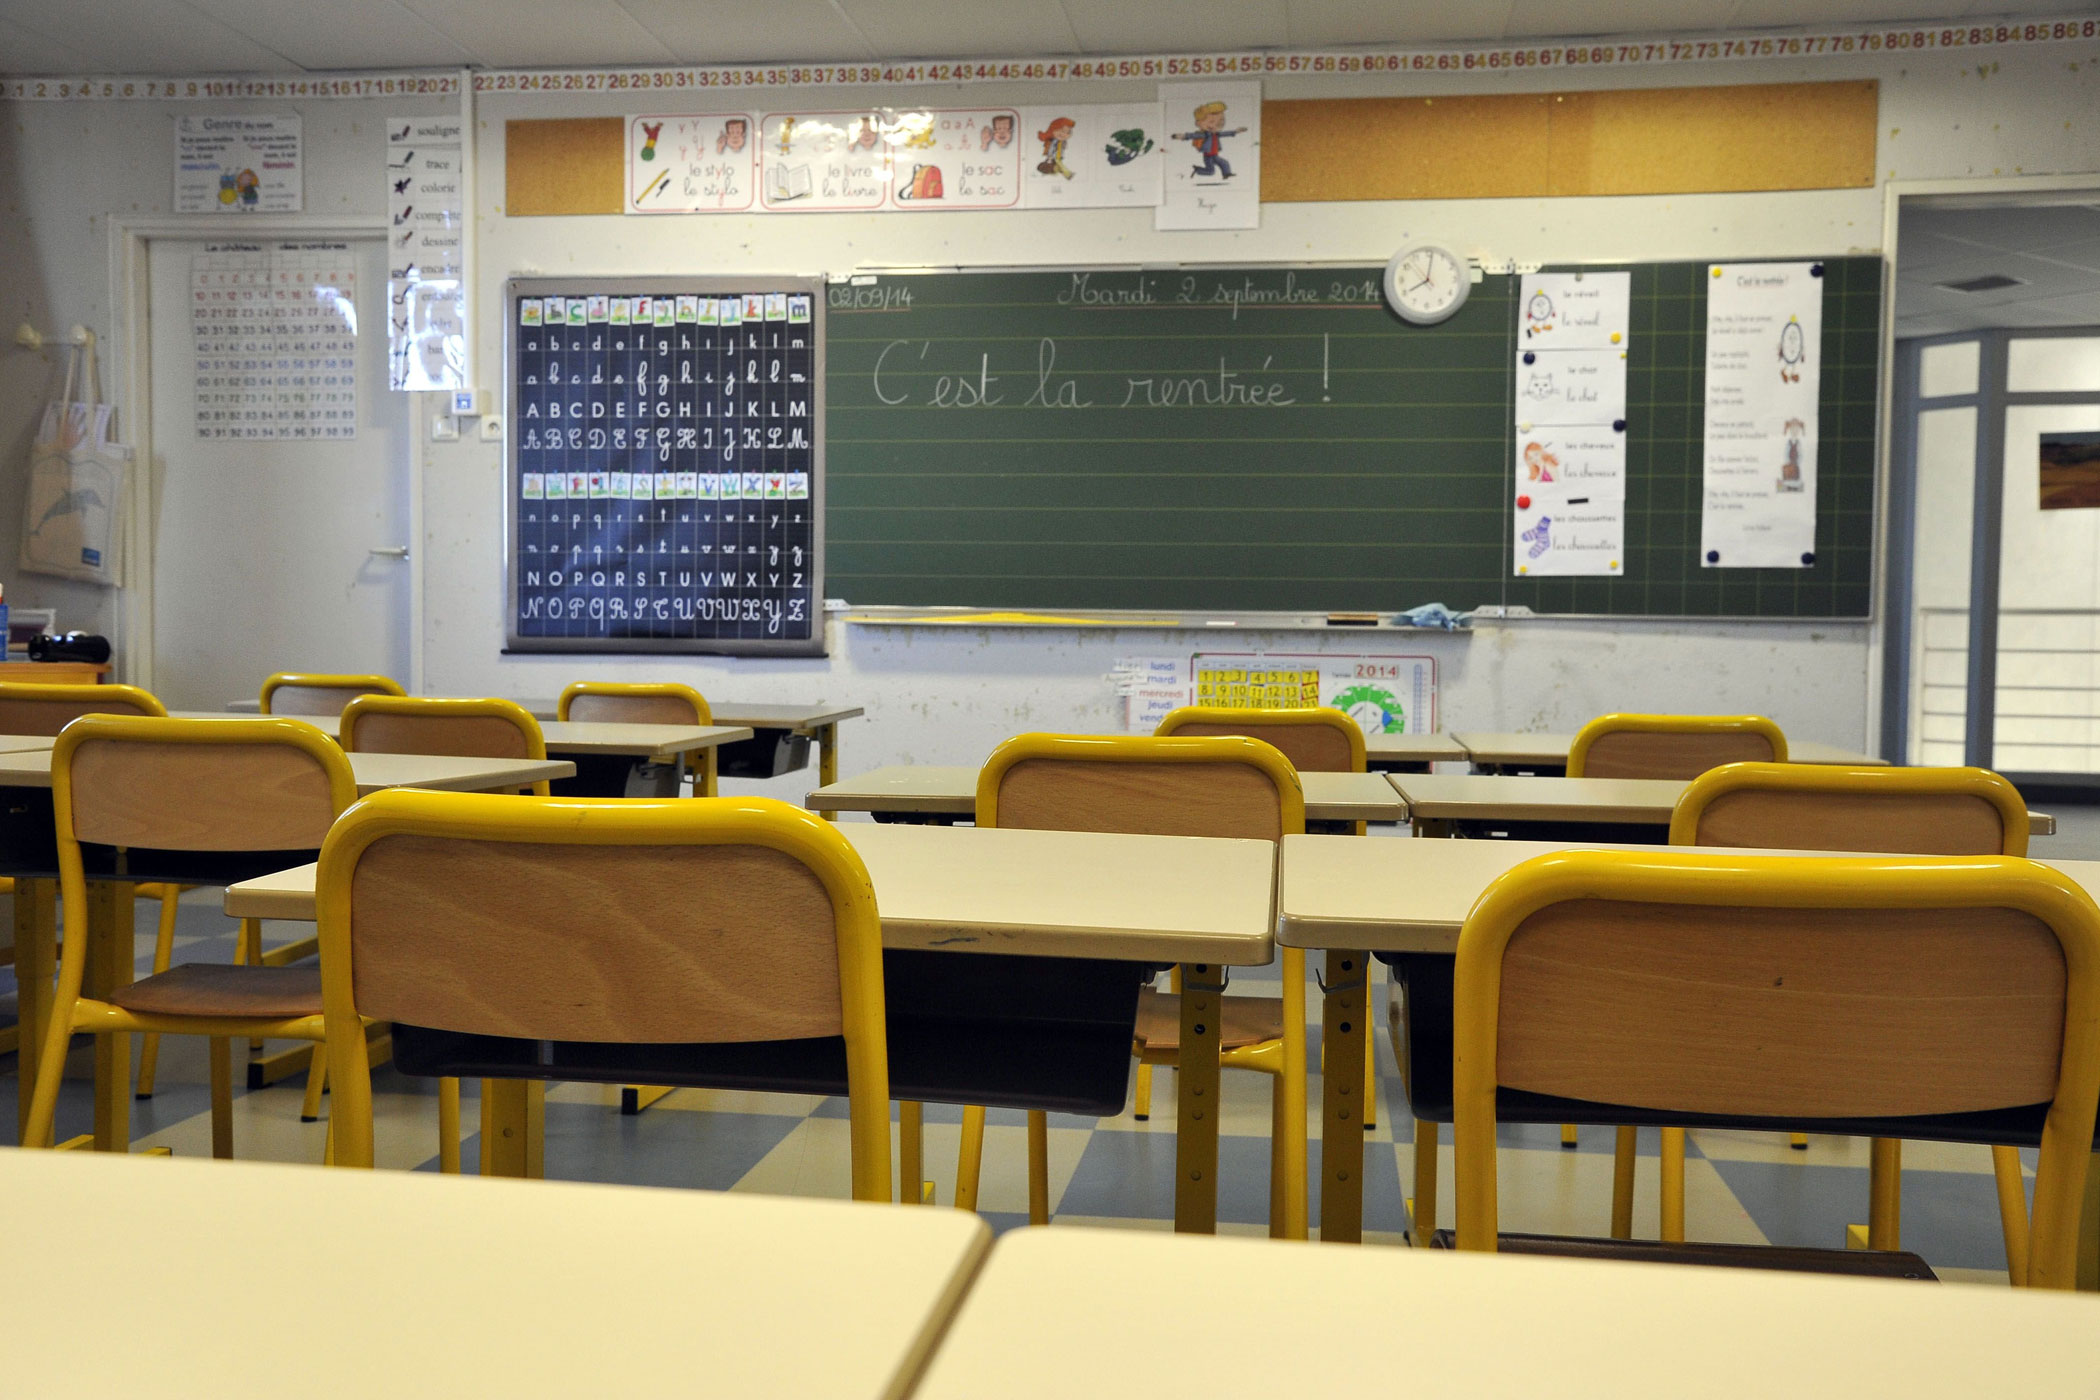 A general view of a classroom on the first day of class in the new school year in Nice, France, on Sept. 2, 2014.